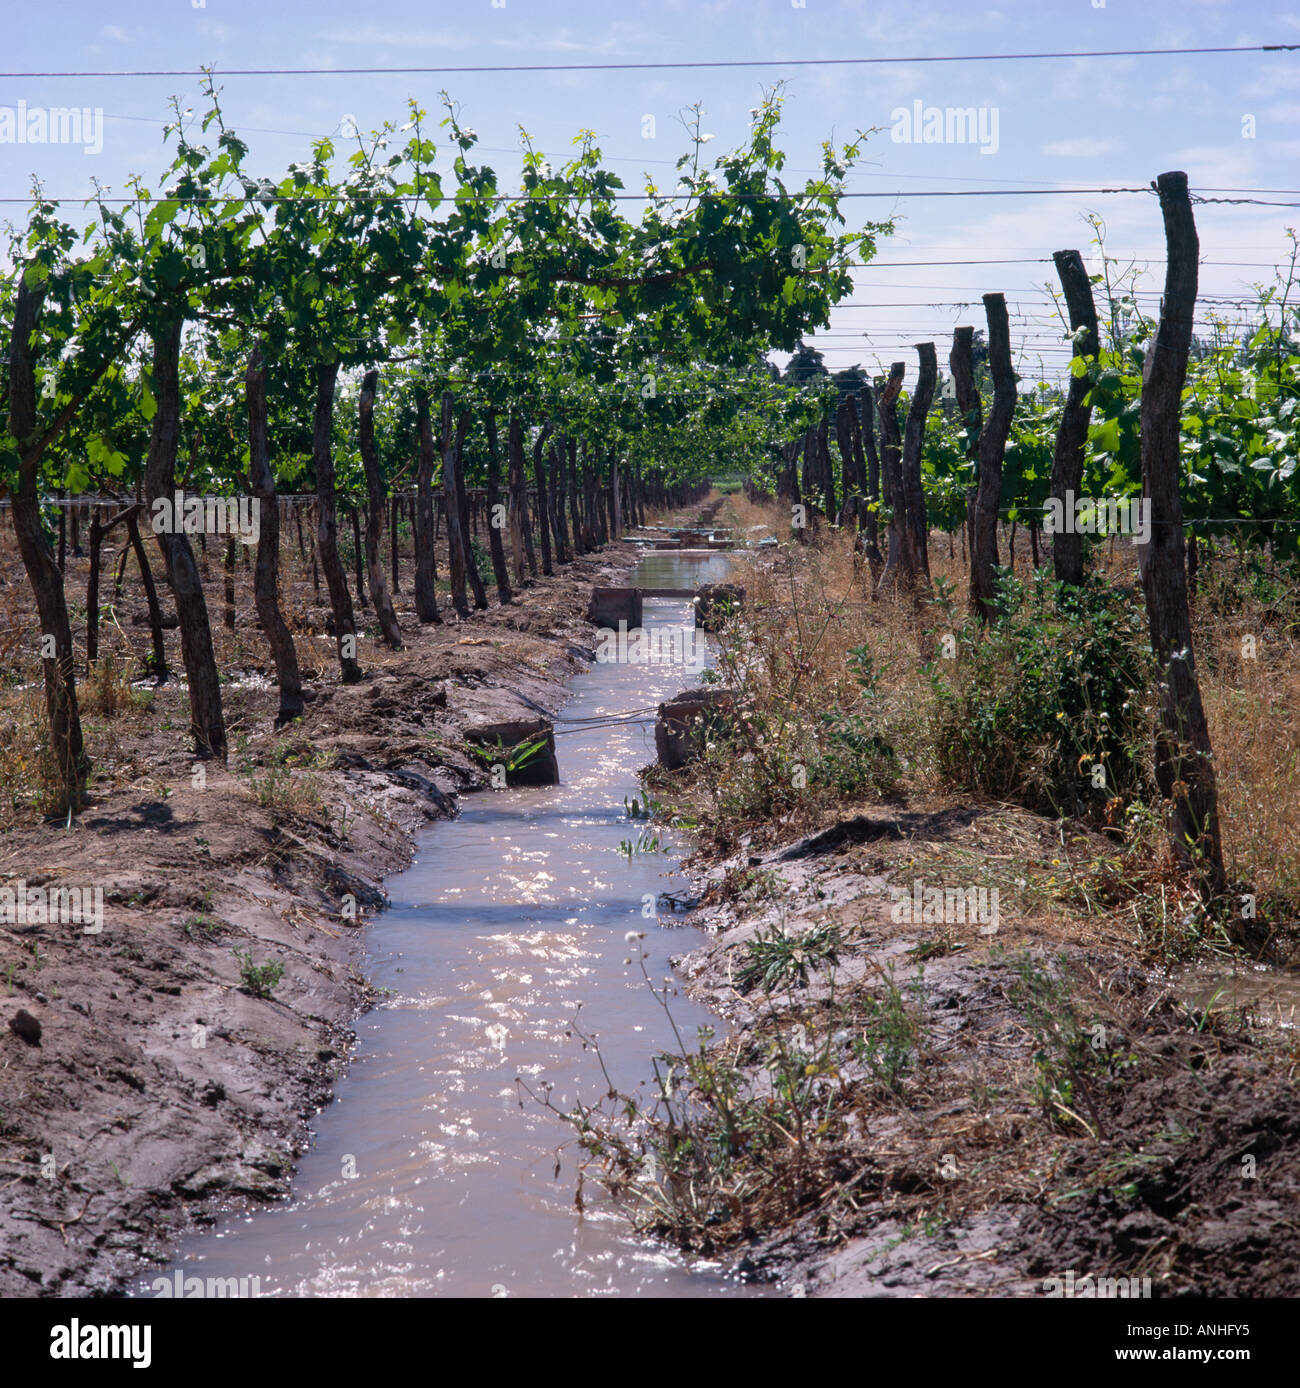 irrigation channel in vineyard of bodegas trapiche owned by pe aflor stock photo royalty free. Black Bedroom Furniture Sets. Home Design Ideas